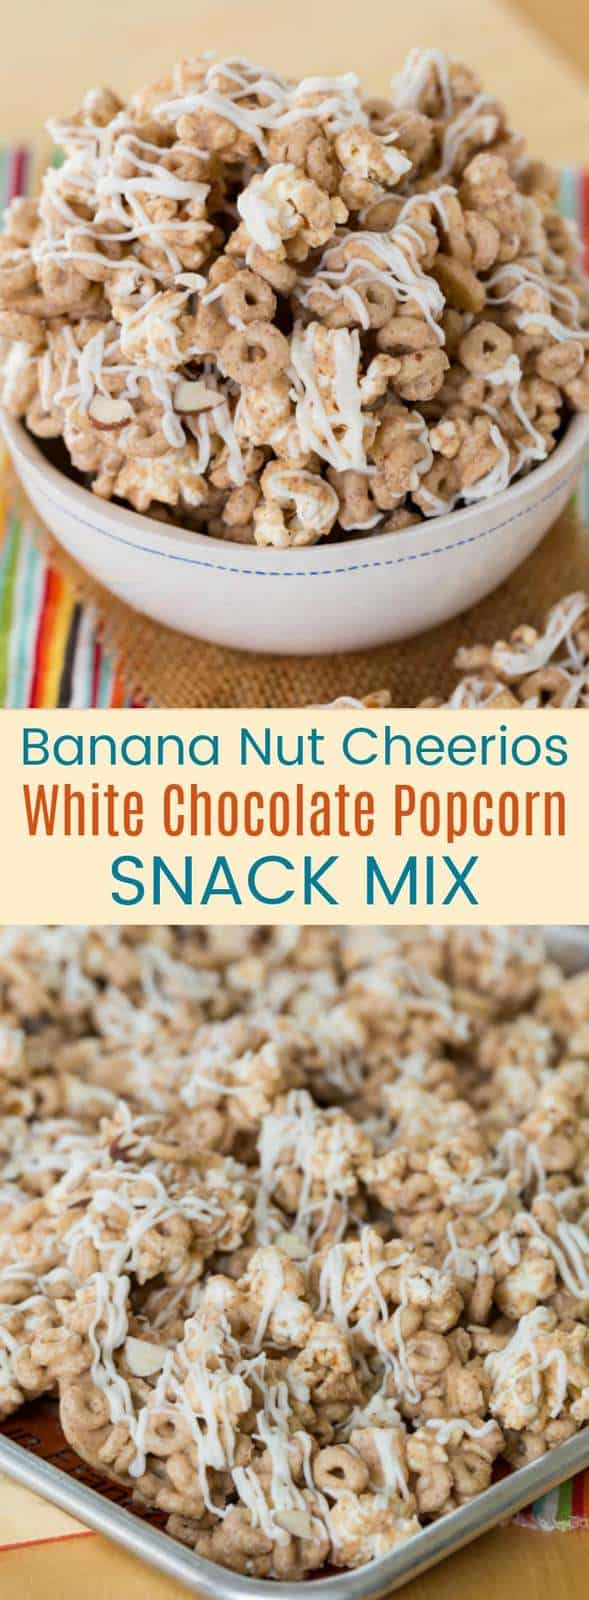 Banana Nut Cheerios White Chocolate Popcorn Snack Mix - an easy snack recipe with only six ingredients. Sweet and nutty flavors that make it totally irresistible! #glutenfree #cheerios #snackmix #sponsored